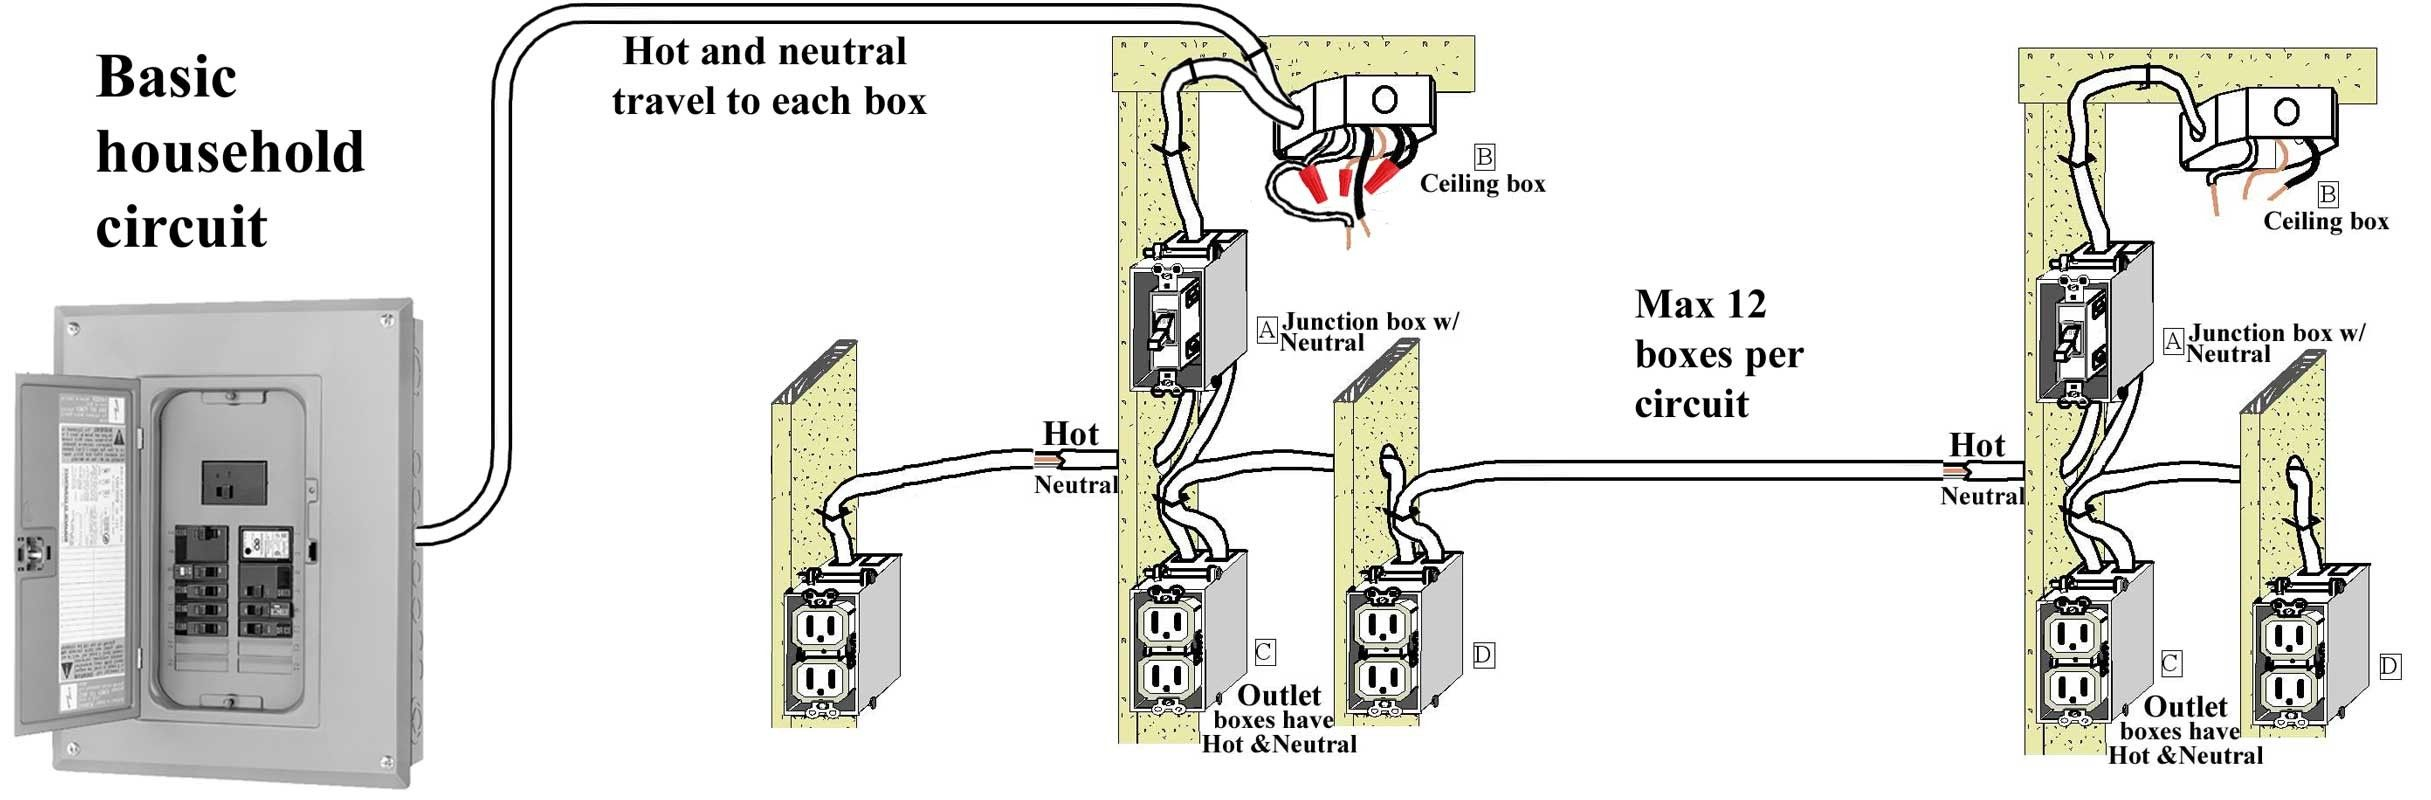 home electrical wiring basics book wiring diagrams electrical wiring techniques basic home wiring illustrated #3